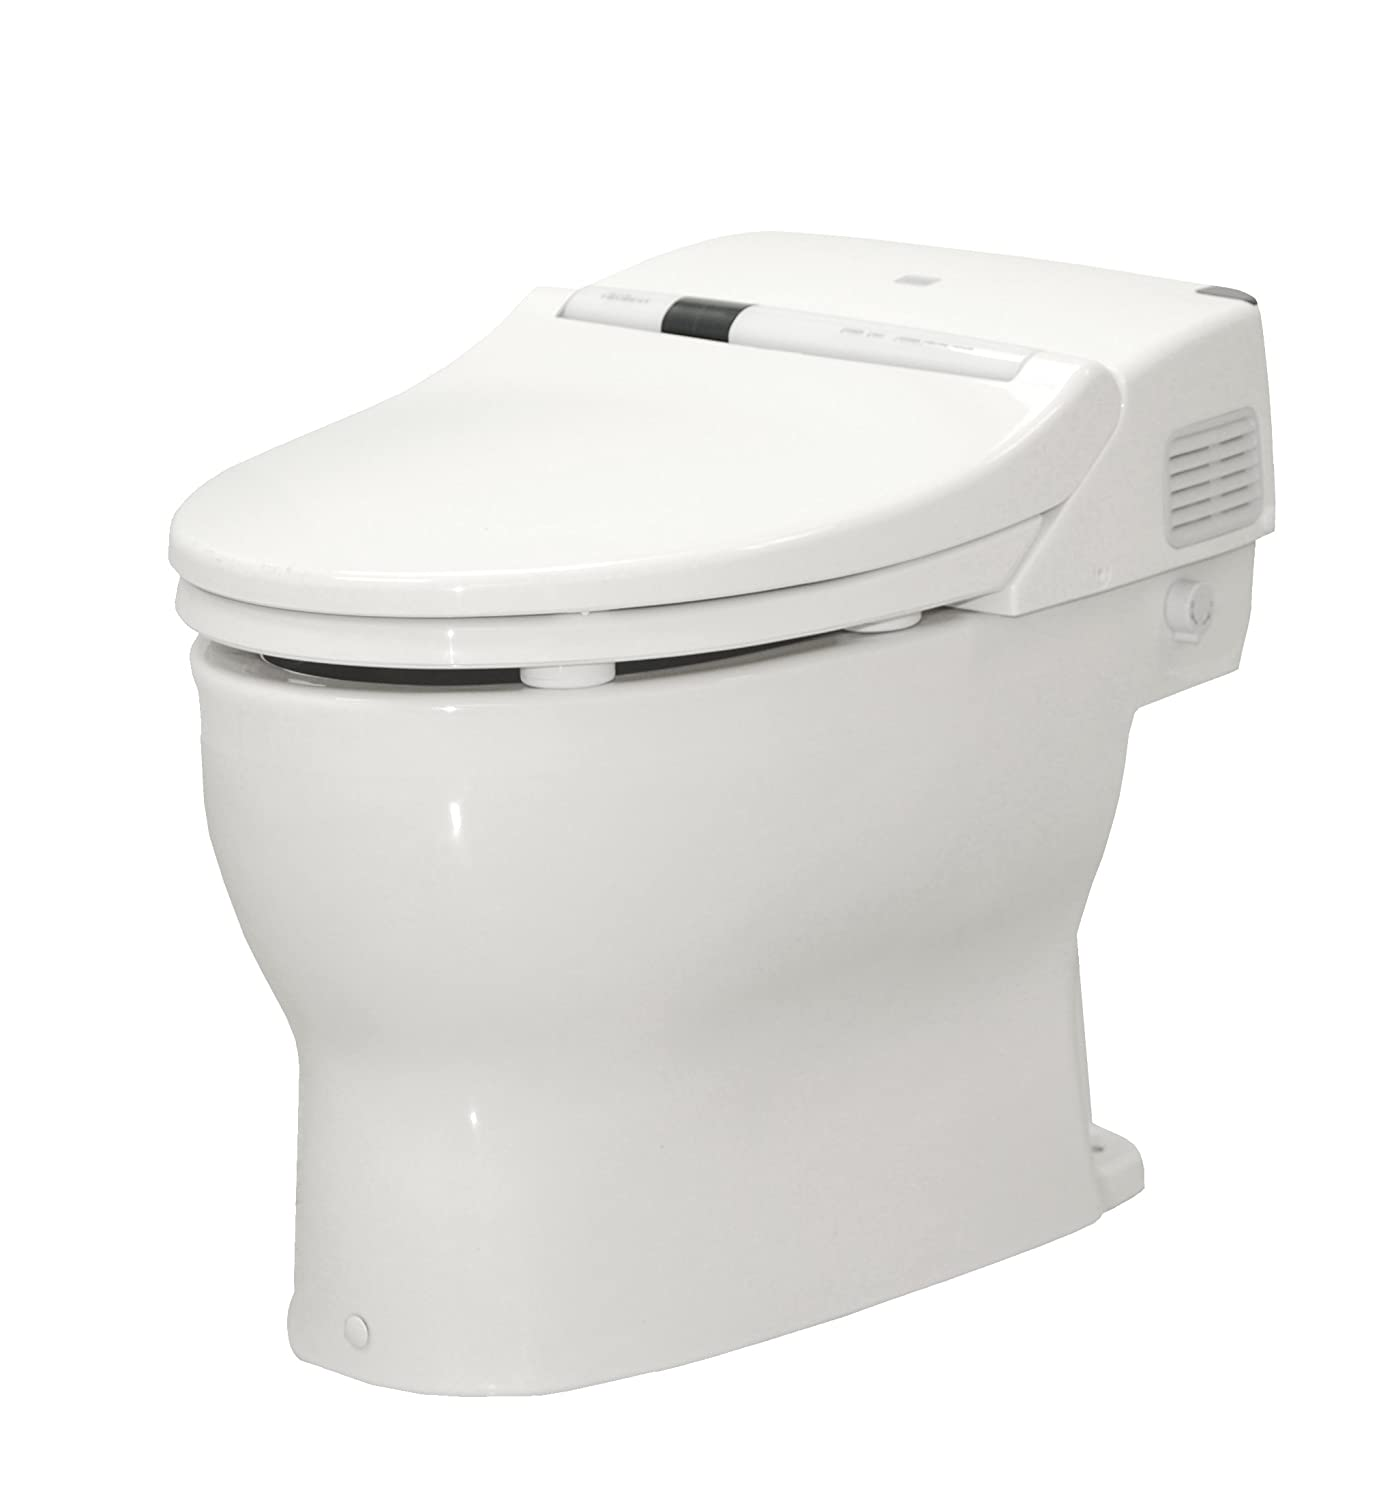 American Standard Cadet 3 Decor Modern Toilet Bowls Toilet Decorations